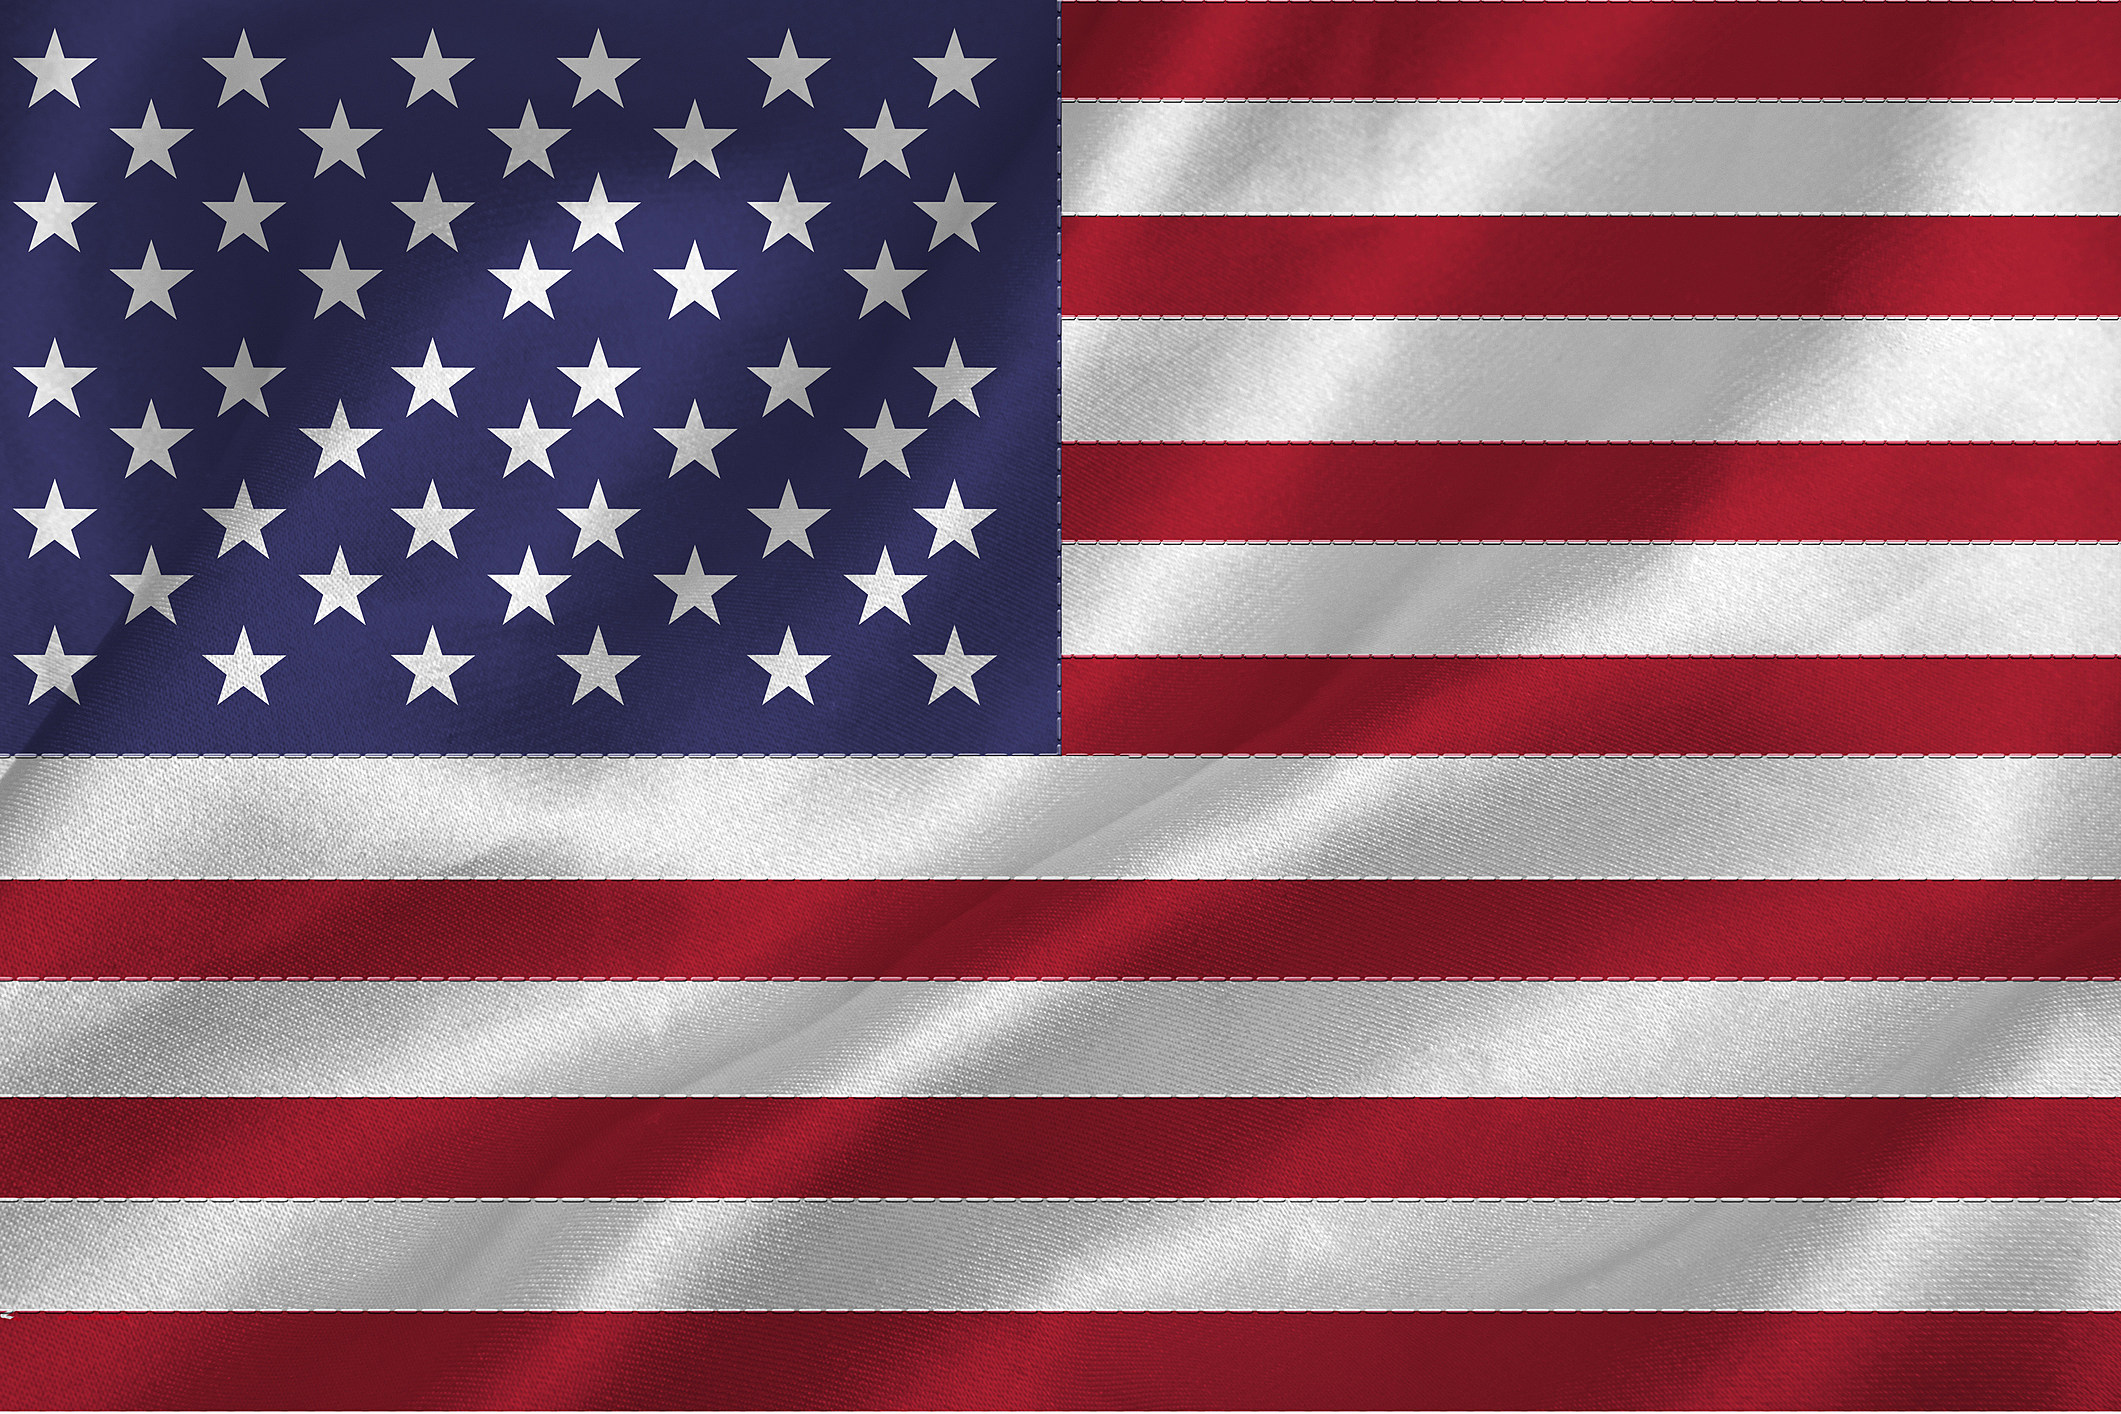 bcecd88d96f How to Properly Dispose of an American Flag